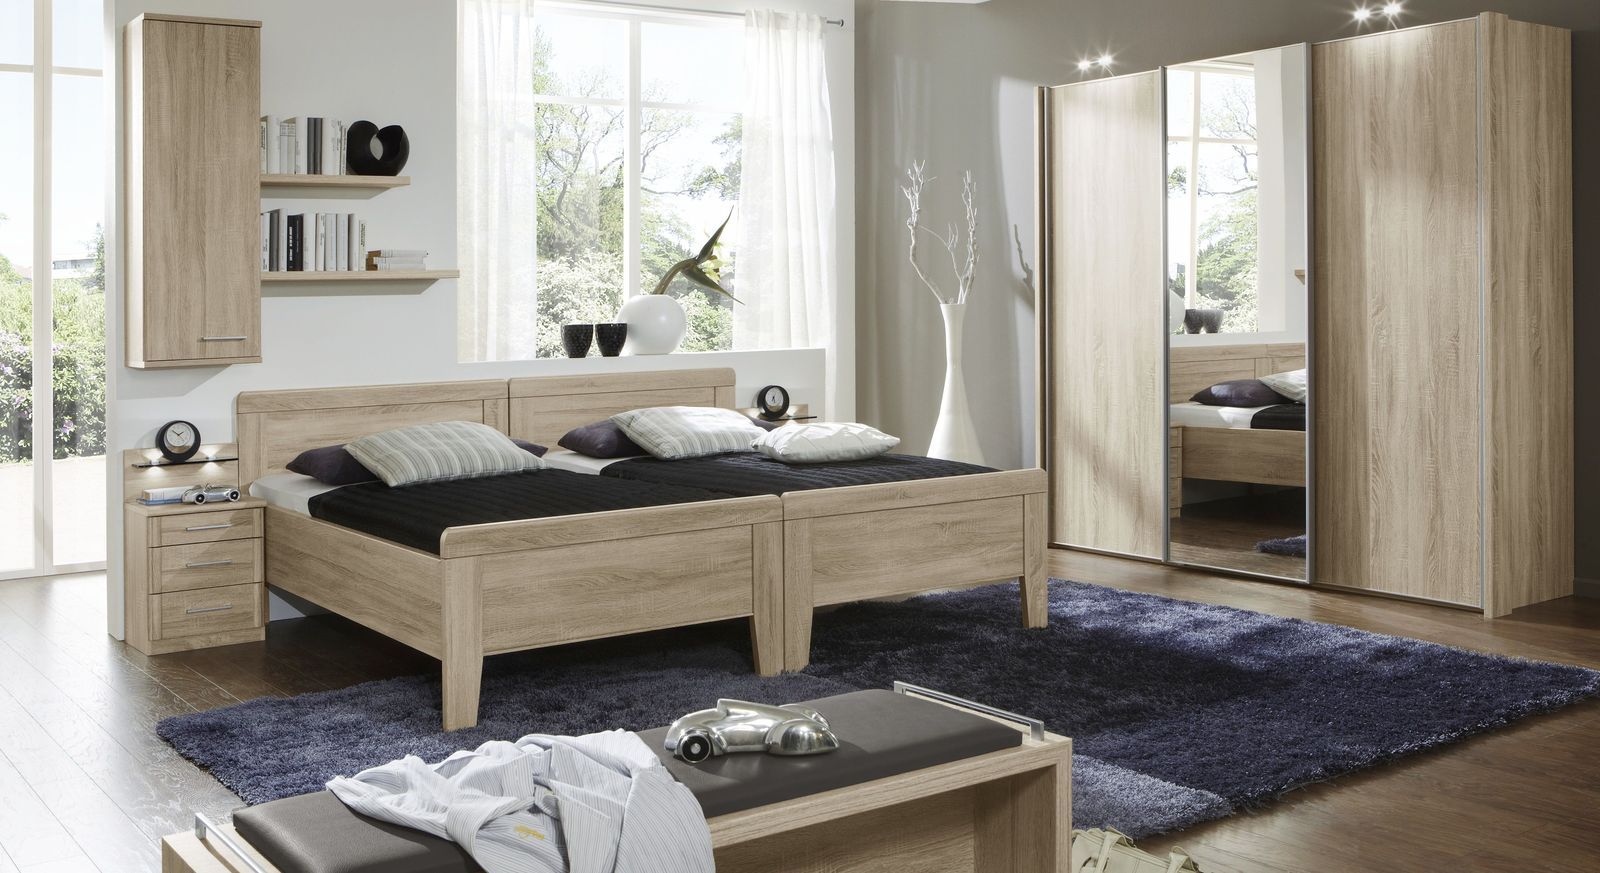 schlafzimmer set mit seniorenbett schwebet renschrank palmira. Black Bedroom Furniture Sets. Home Design Ideas